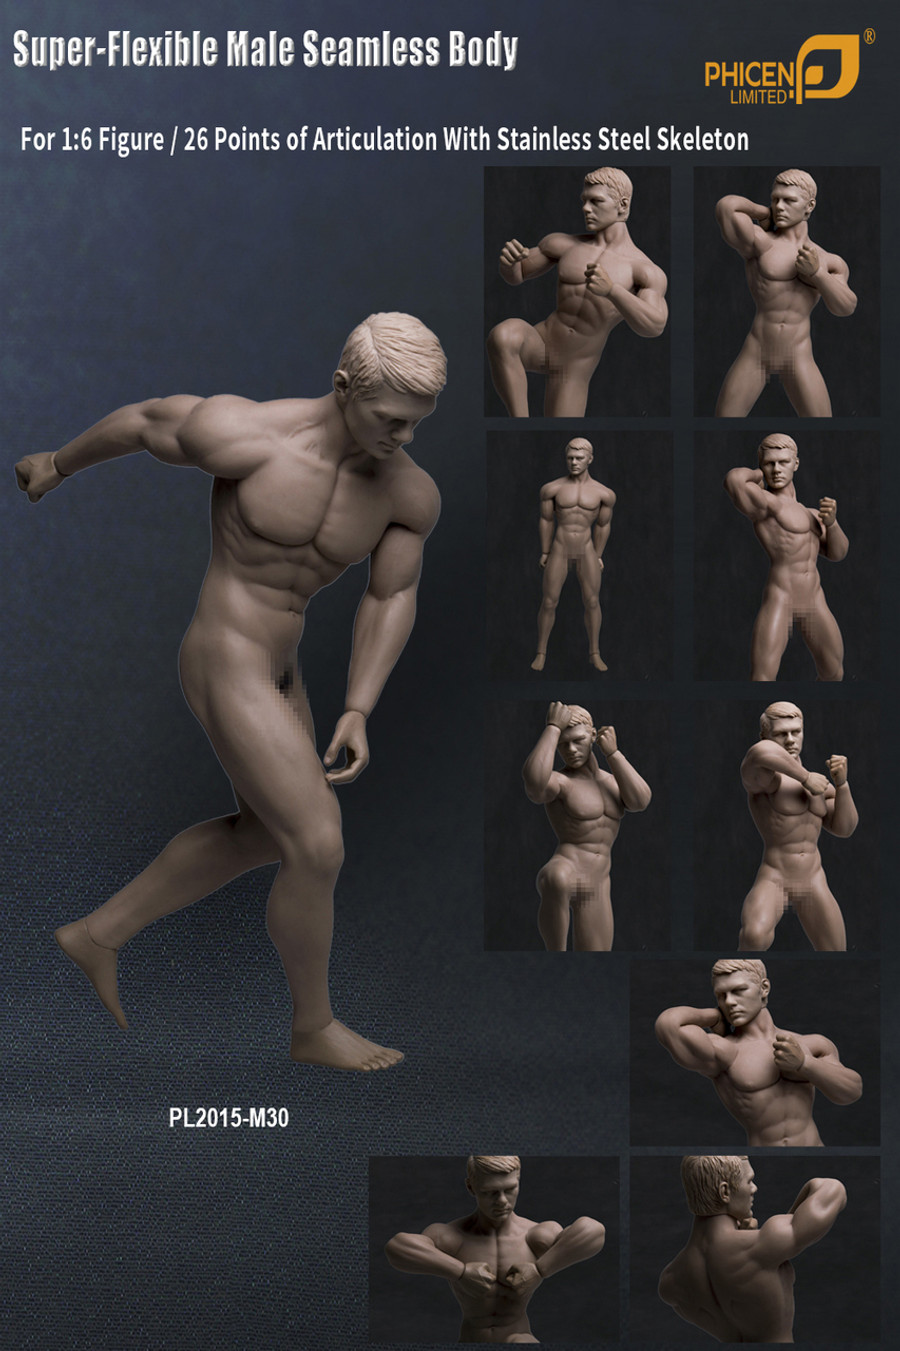 Phicen - Flexible Stainless Steel Seamless Male Body